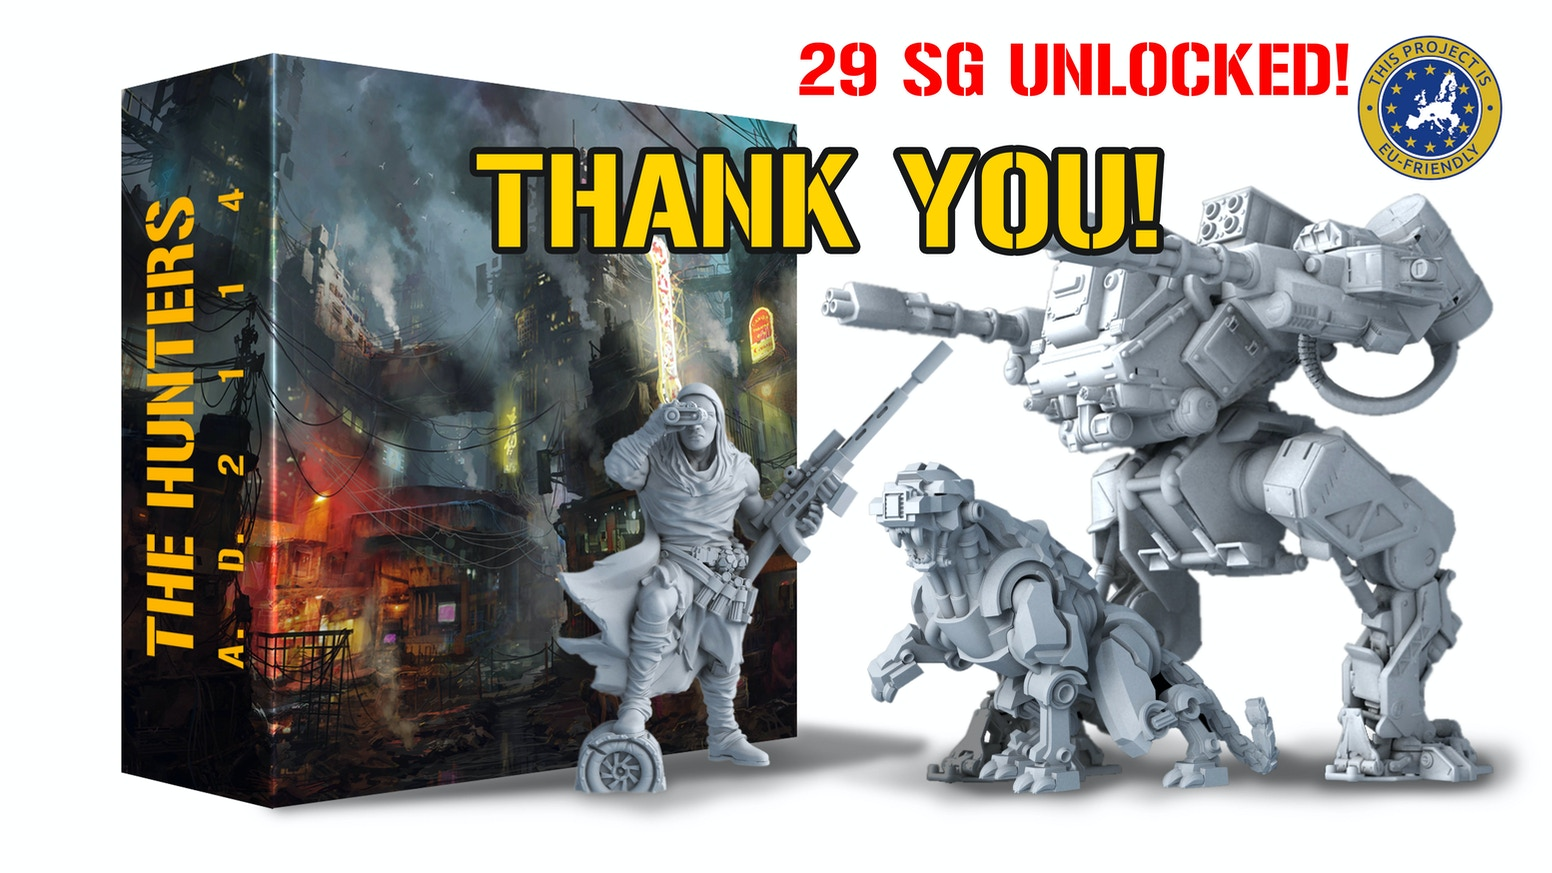 The Hunters AD 2114 is a cooperative board game for 1-4 players. Become a hunter and face enemies in a post-apocalyptic world.